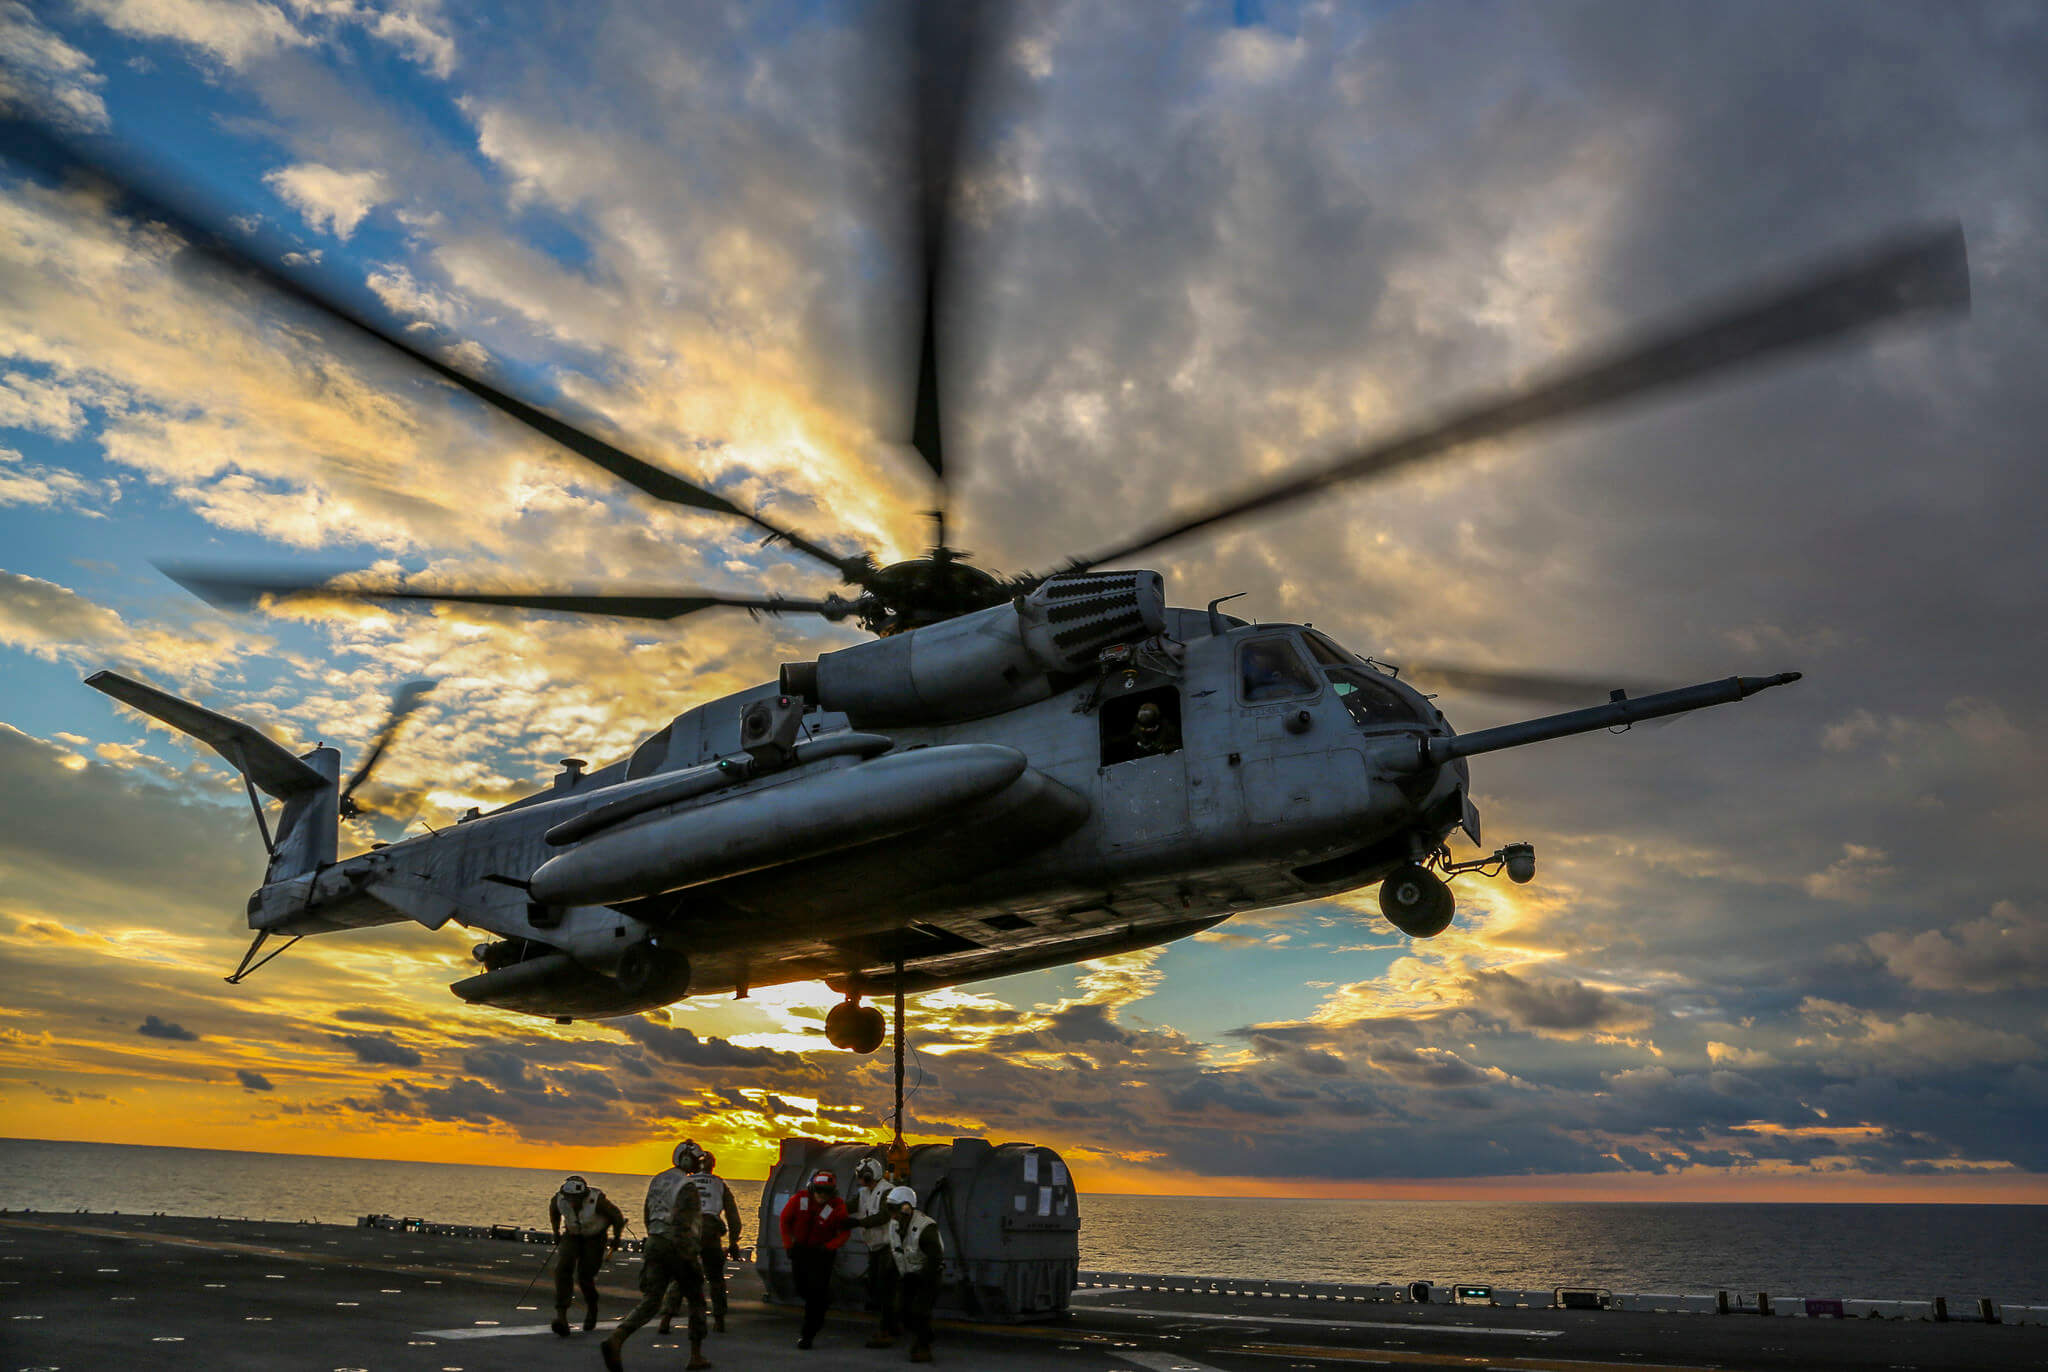 Hoekstra-foto2-U.S. Marine Corps helicopter during a Helicopter Support Team Mission in the Atlantic Ocean- Dec 1 2017- U.S. Department of Defense Current Photo's-Flickr-by Cpl. Jon Sosner